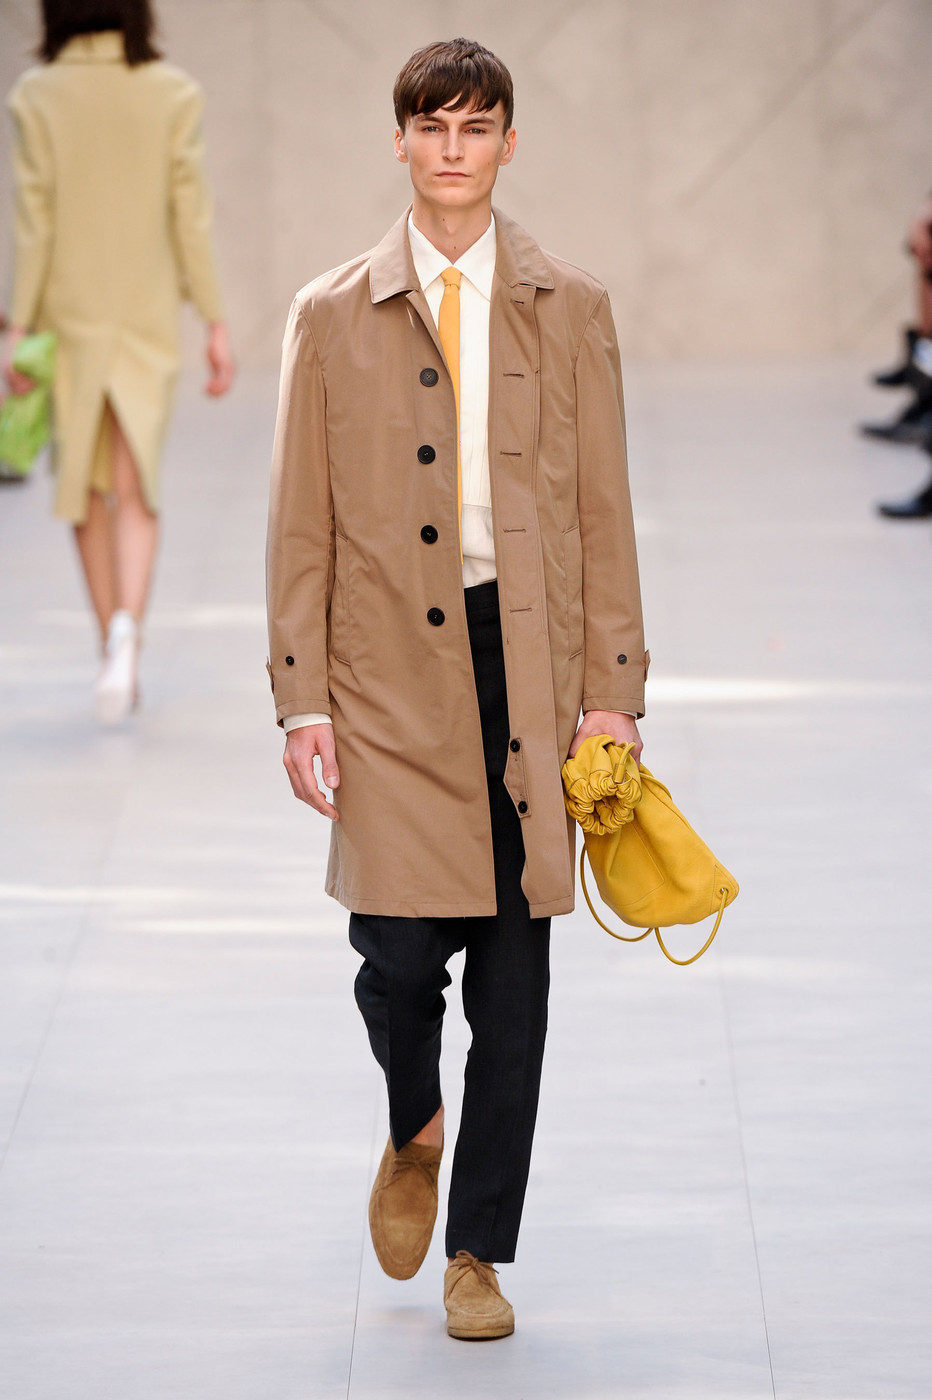 Burberry Prorsum At London Fashion Week Spring 2014 Livingly